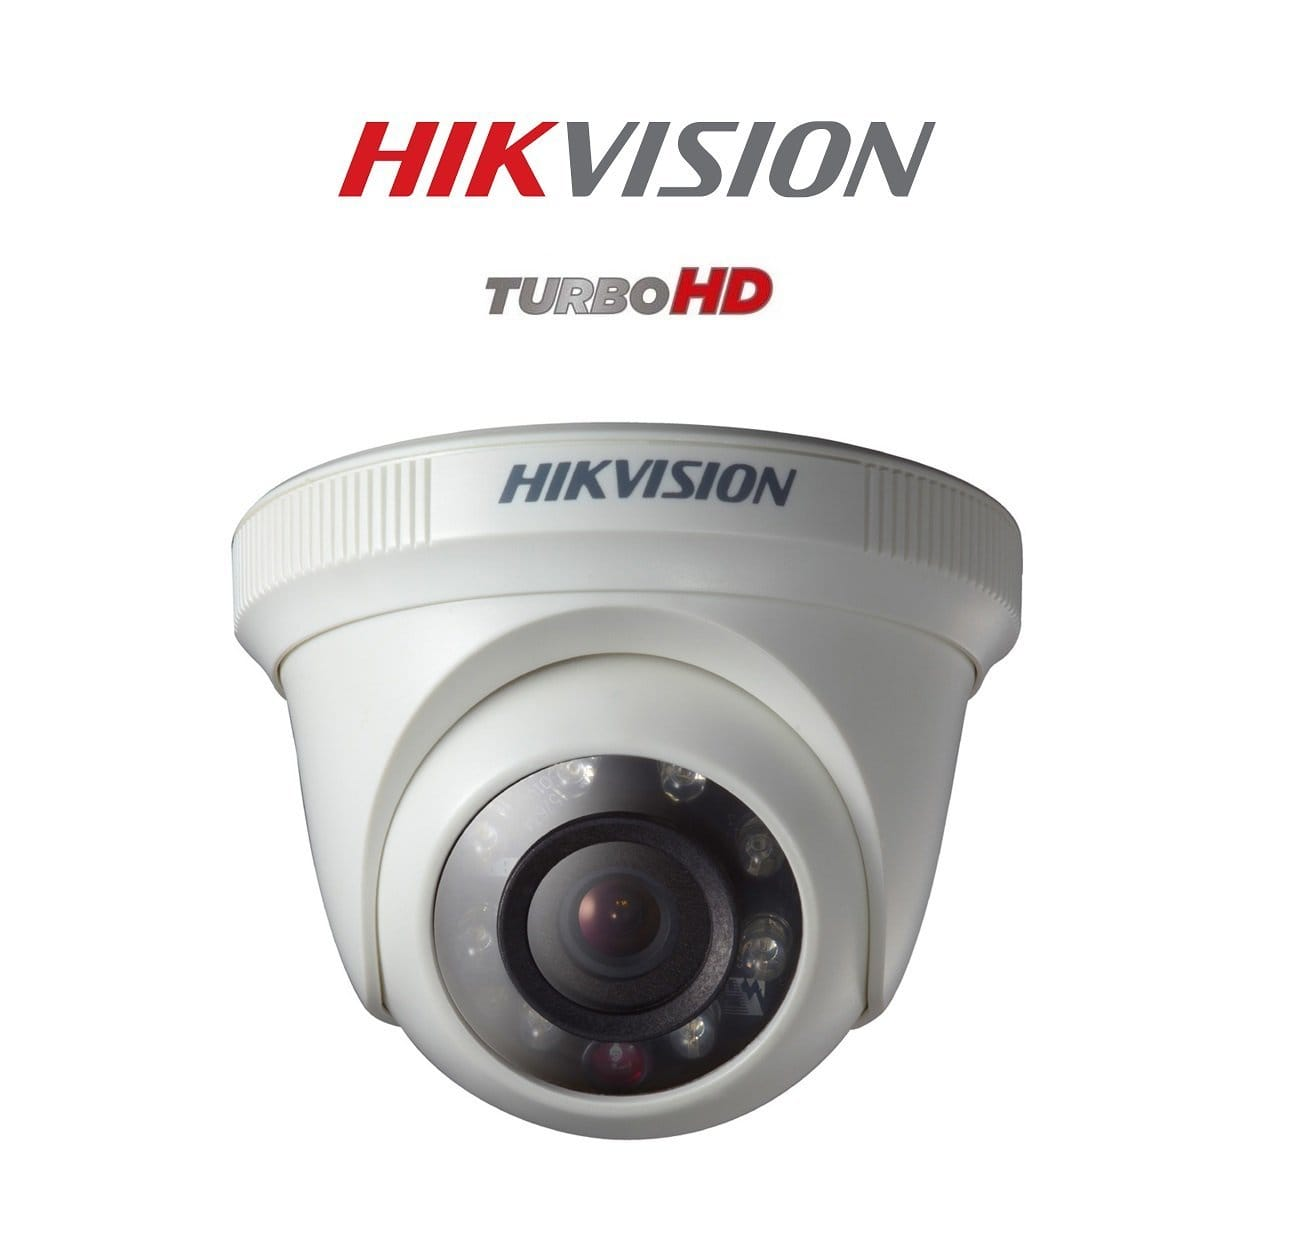 Bán camera HD-TVI HIKVISION DS-2CE56C0T-IRP giá rẻ